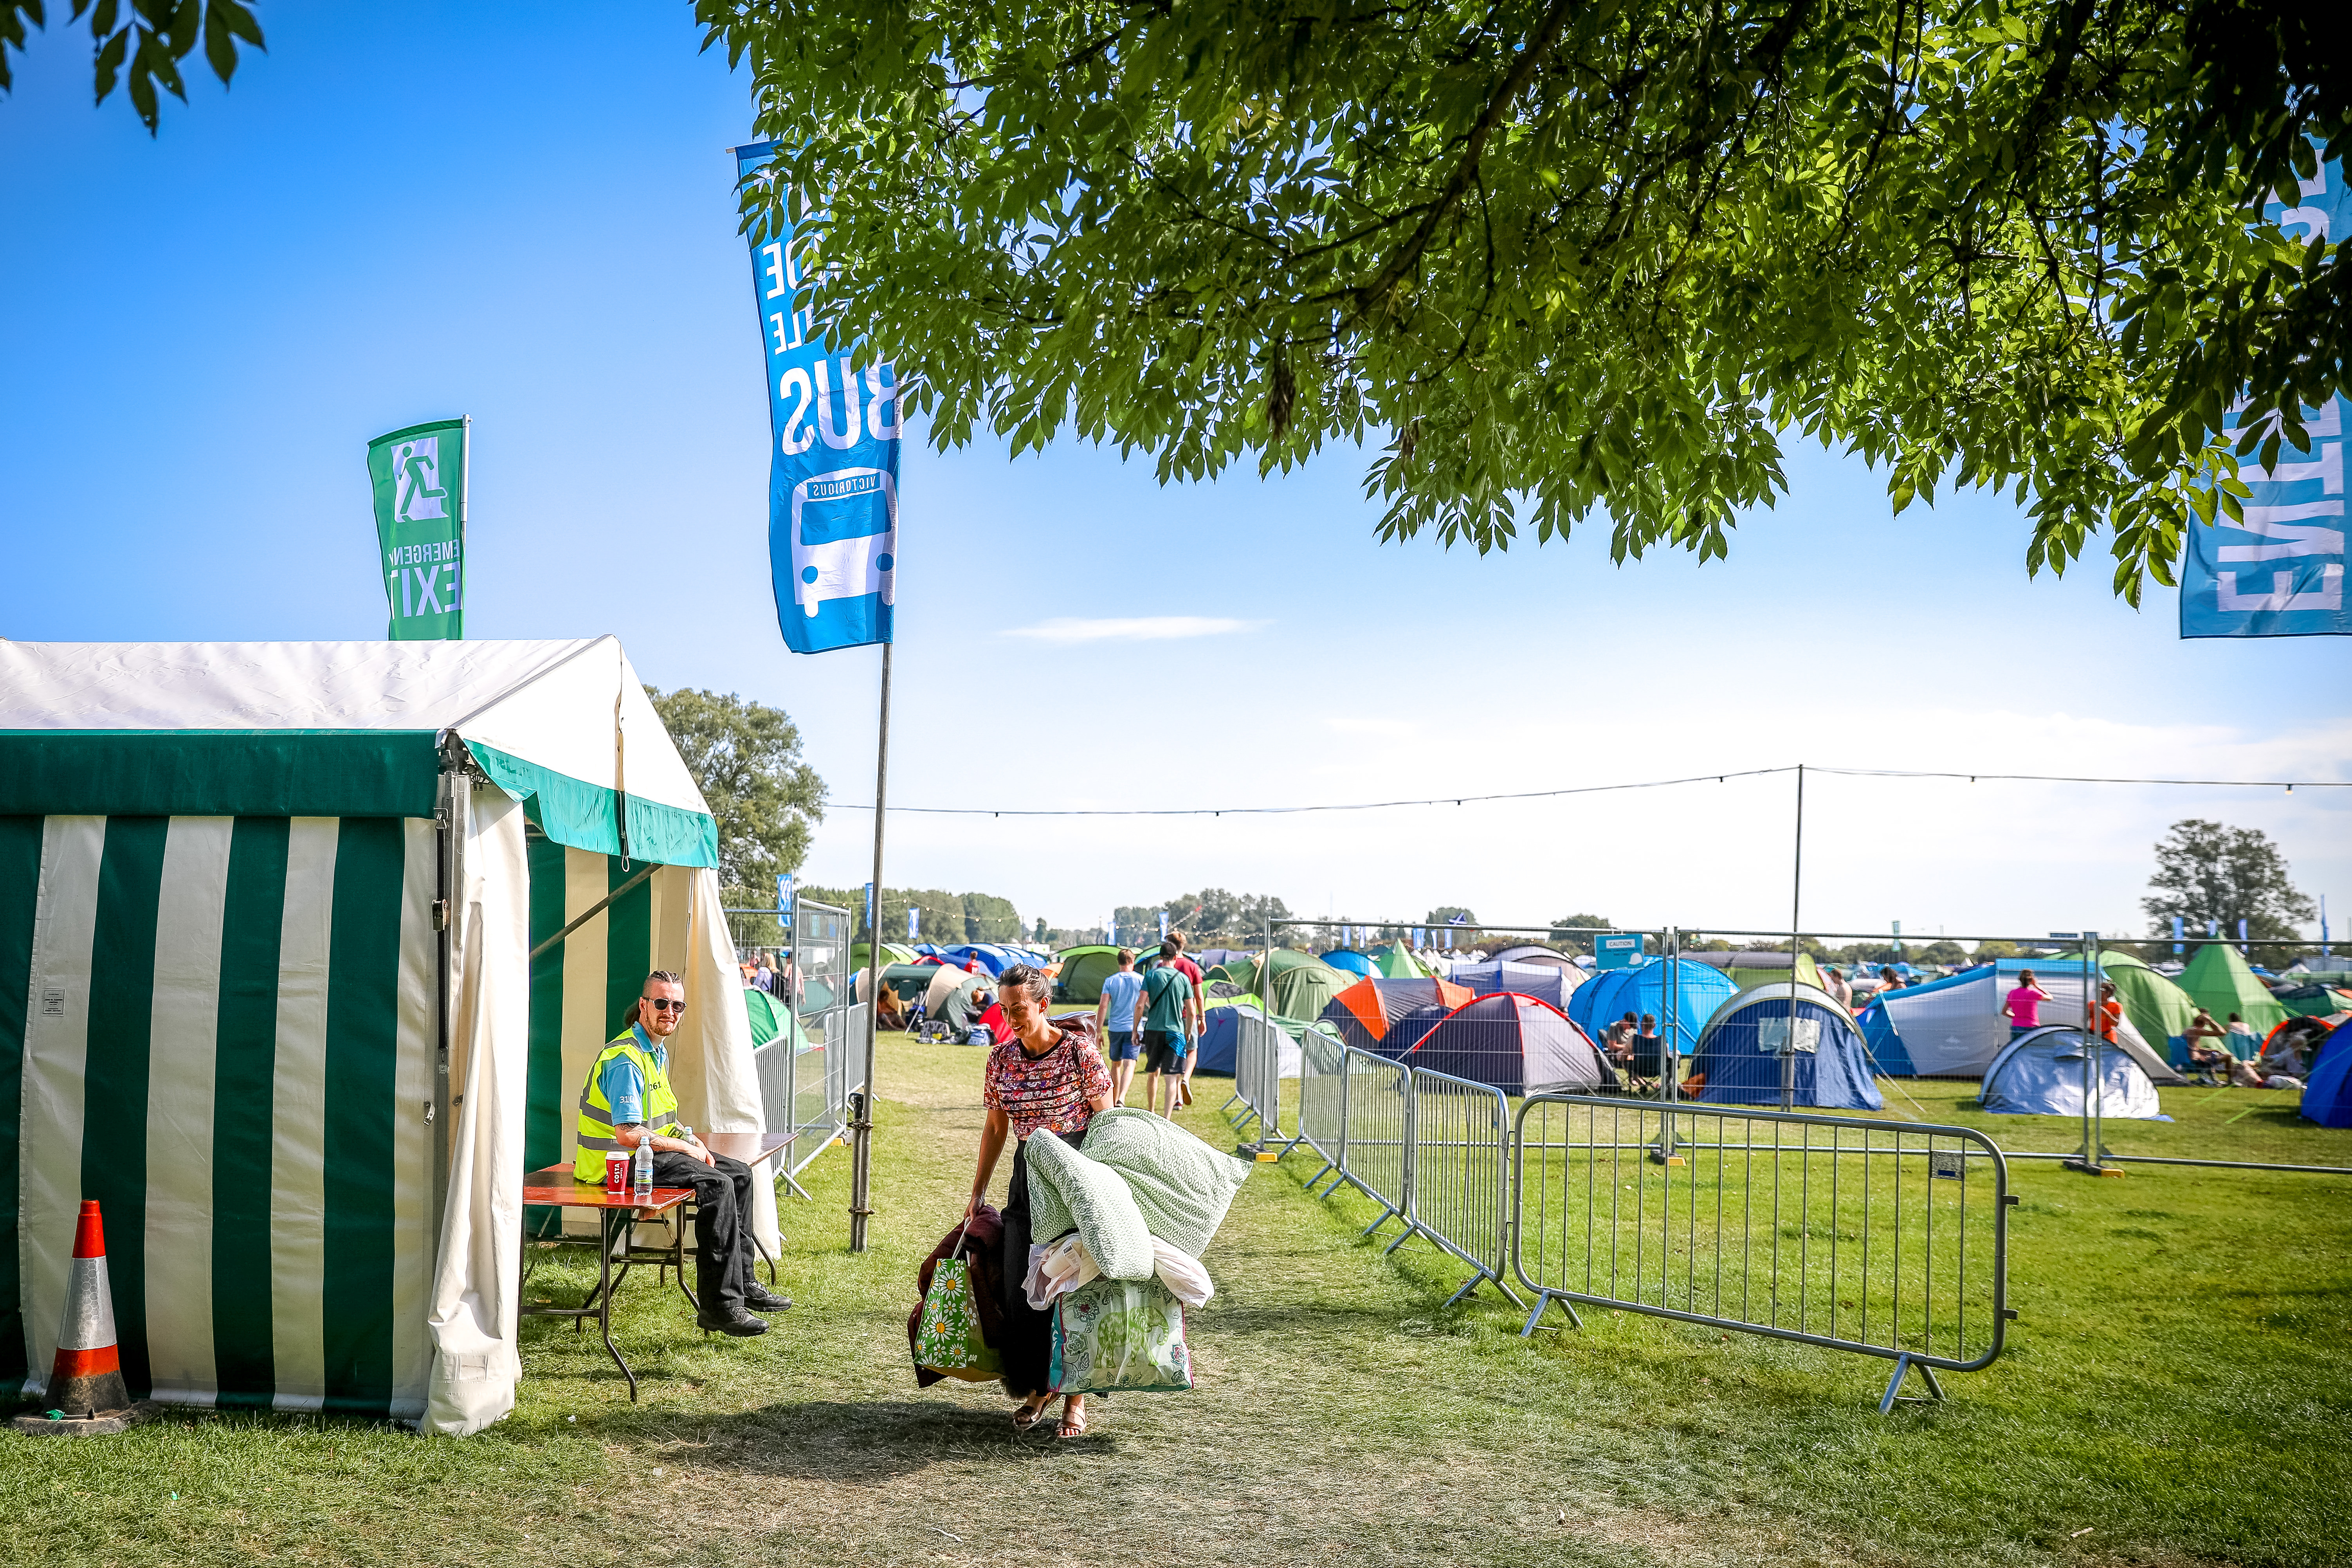 Victorious Festival: Early Bird Ending & Places to Stay! 3